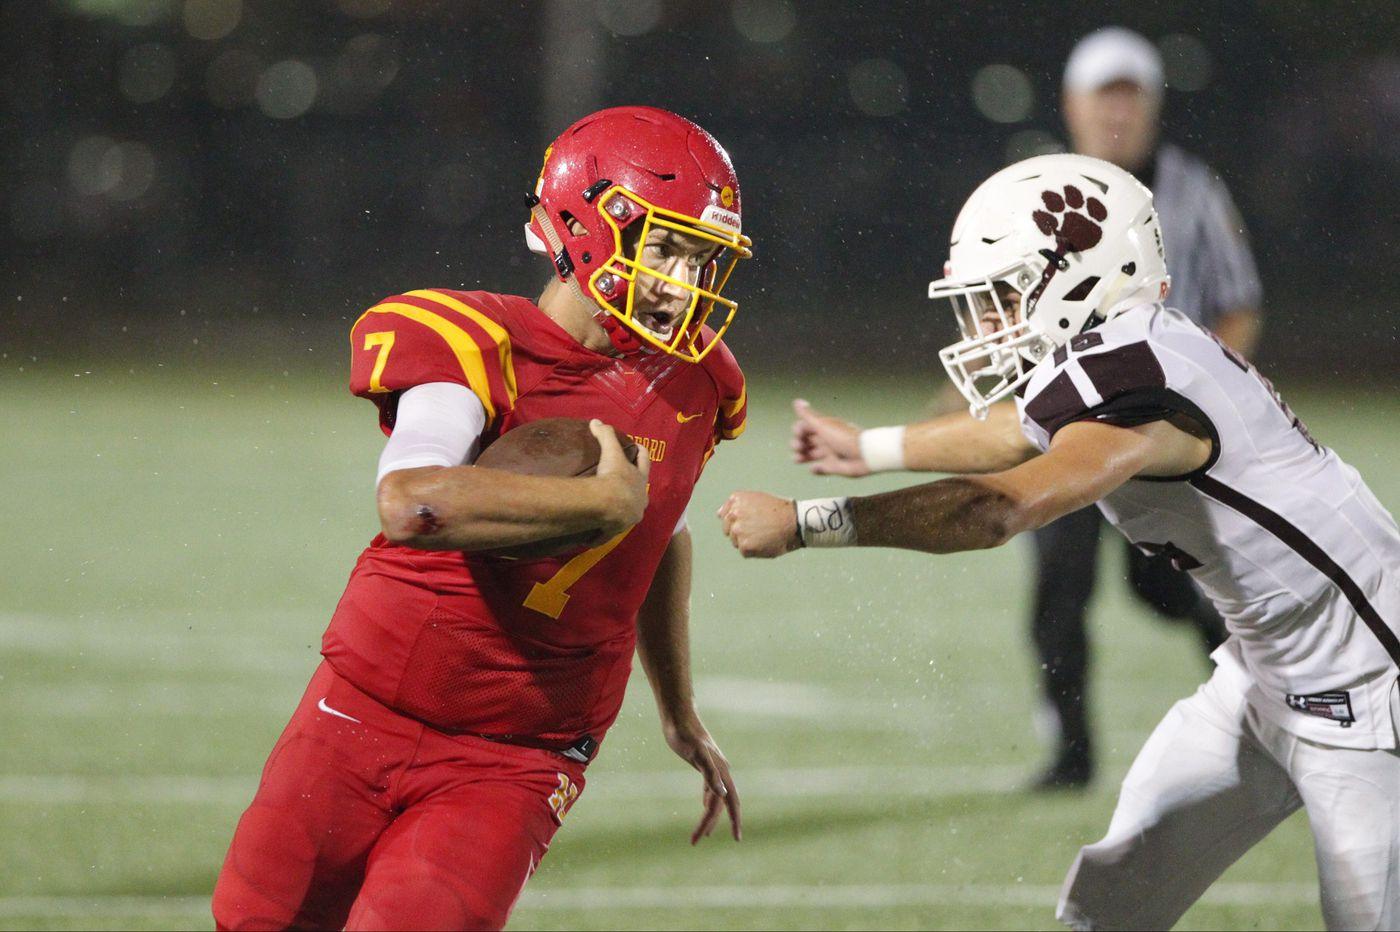 Ridley clashes with Haverford High with plenty at stake | Pick Six